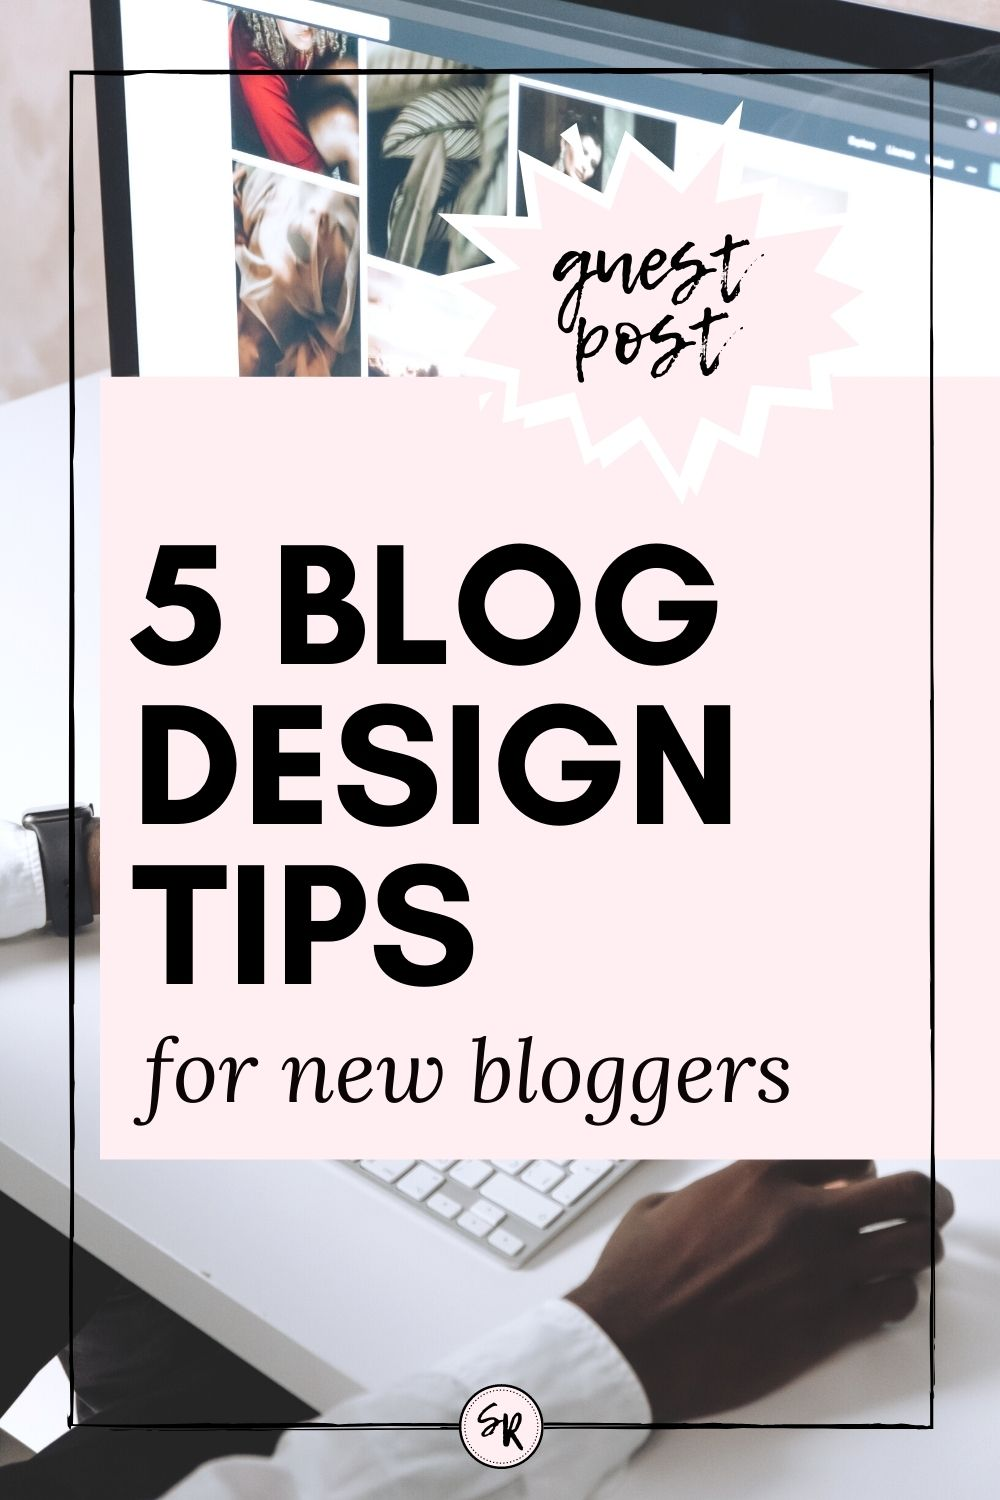 5 BLOG DESIGN TIPS FOR NEW BLOGGERS | A GUEST POST | SHELLYRAWLINGS.COM